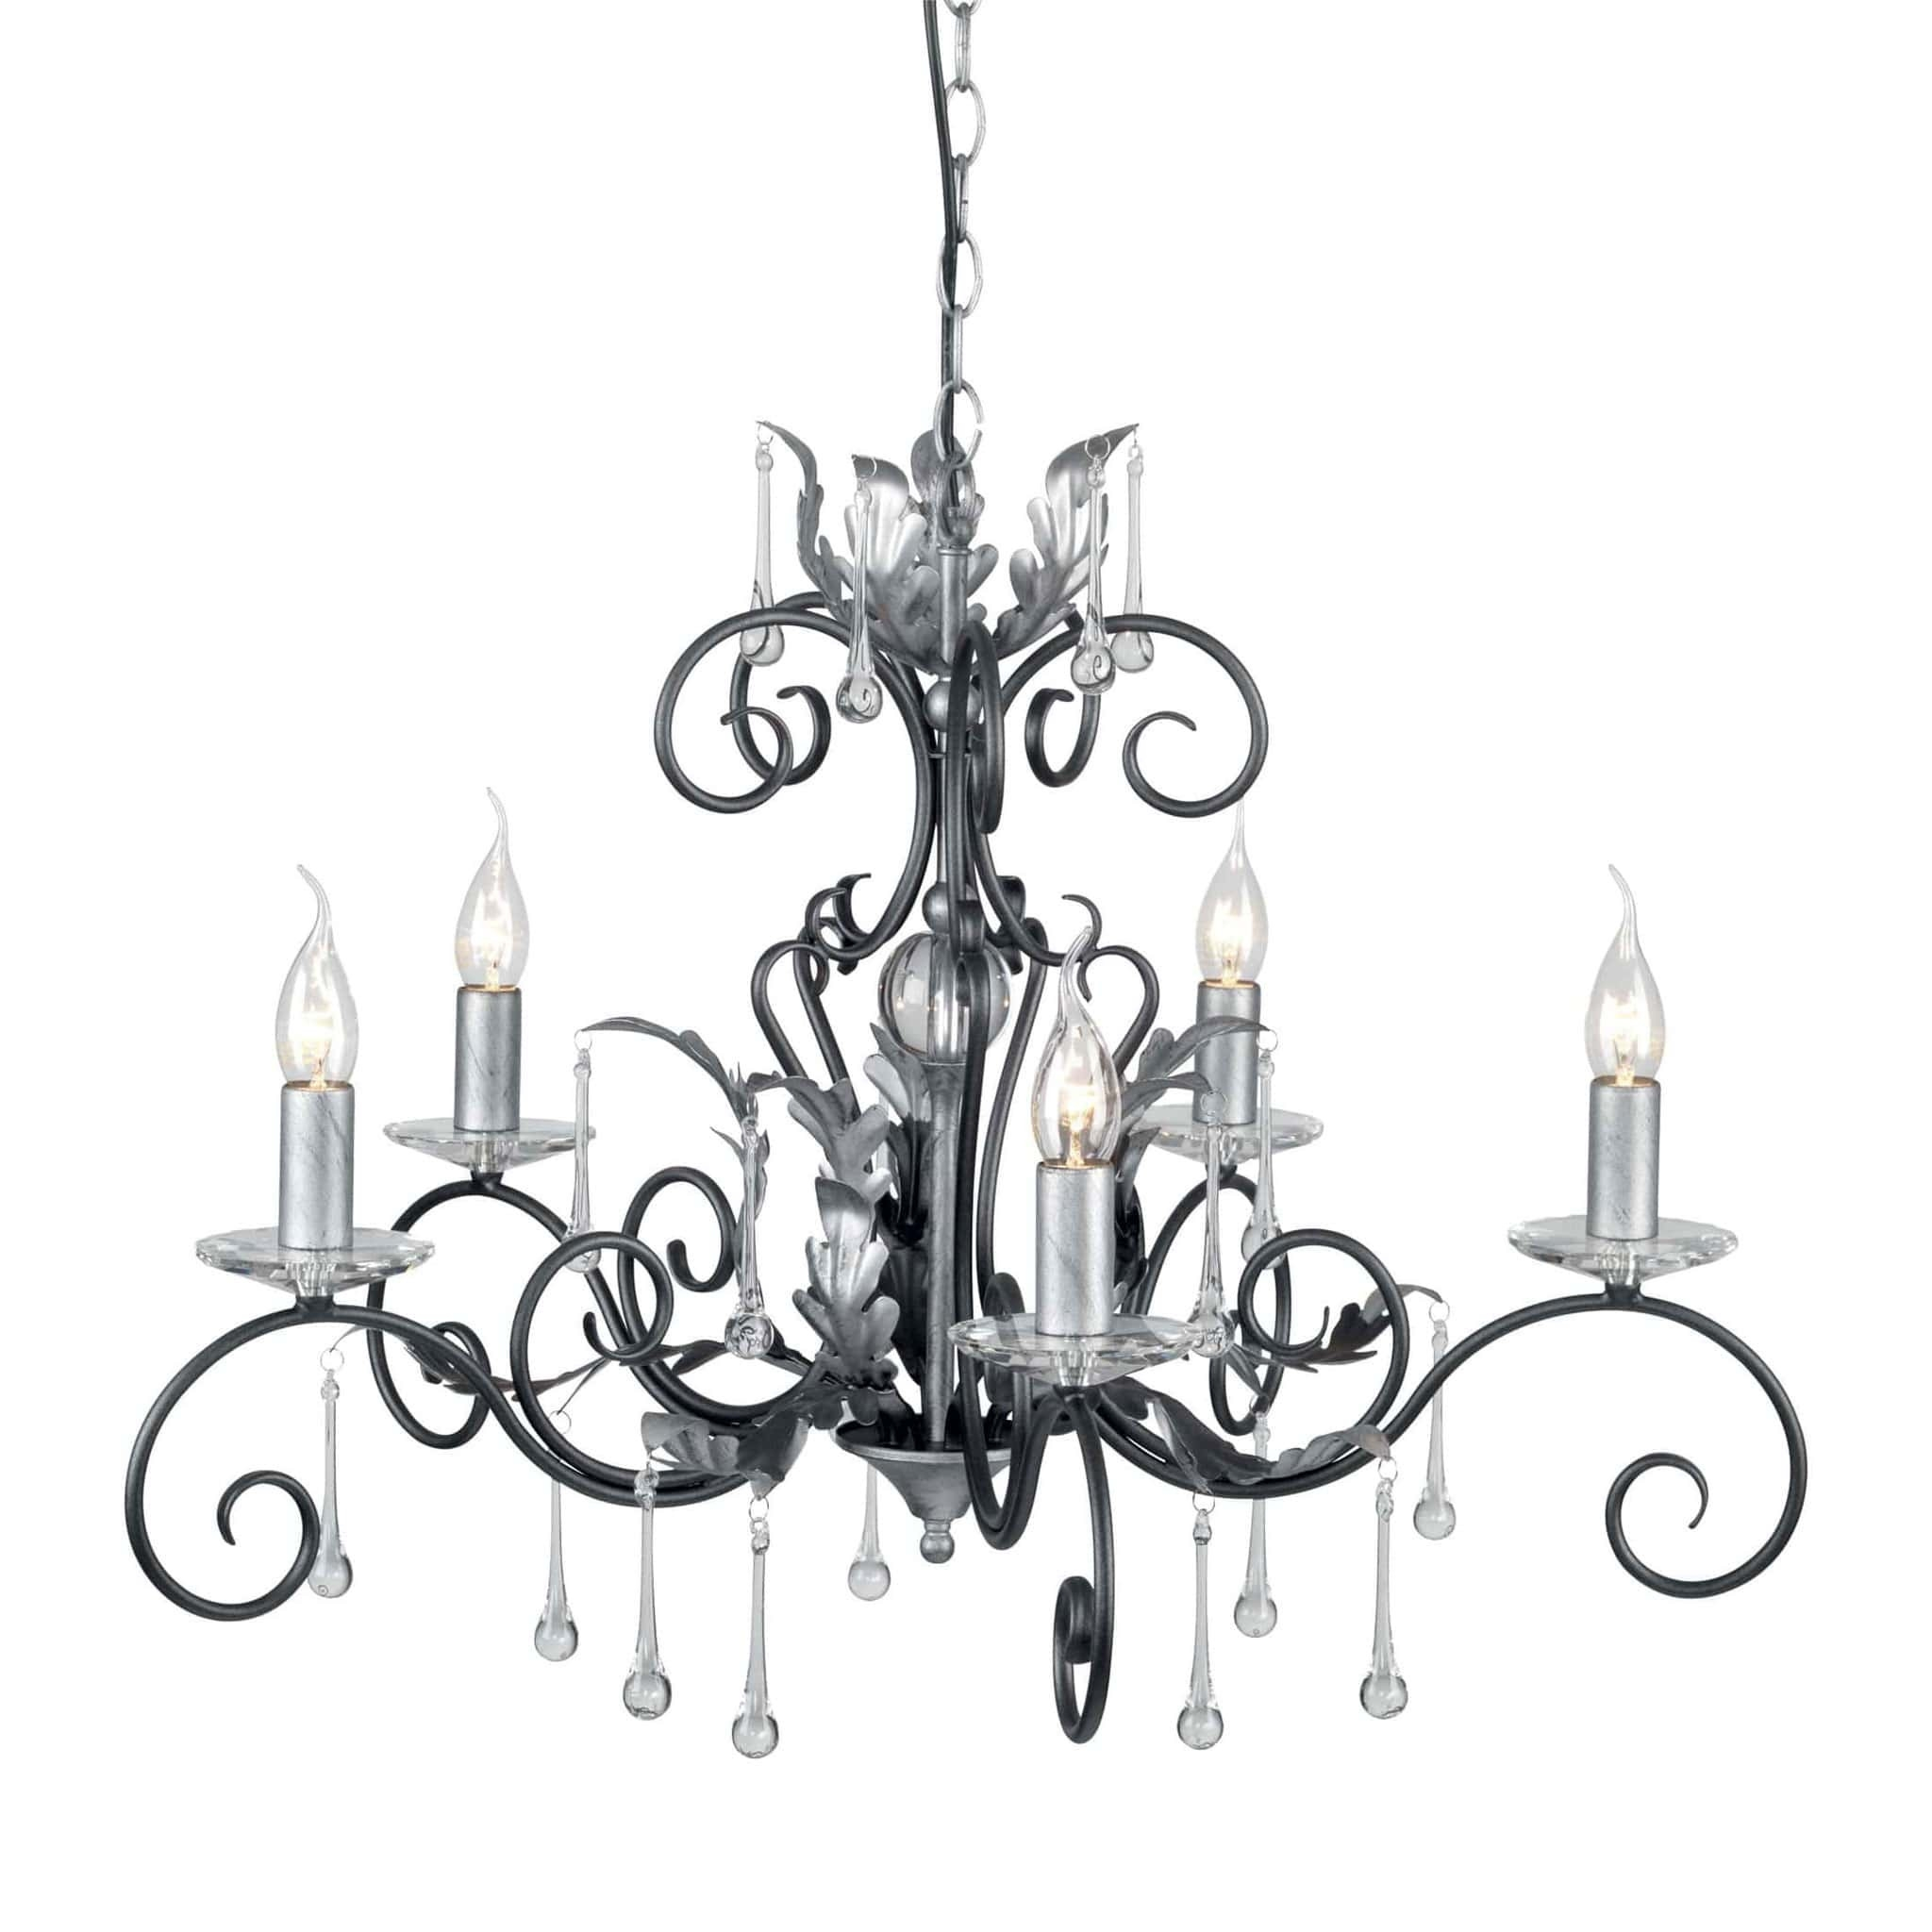 decorative chandelier with 5 arms  crystals  u0026 scrolls